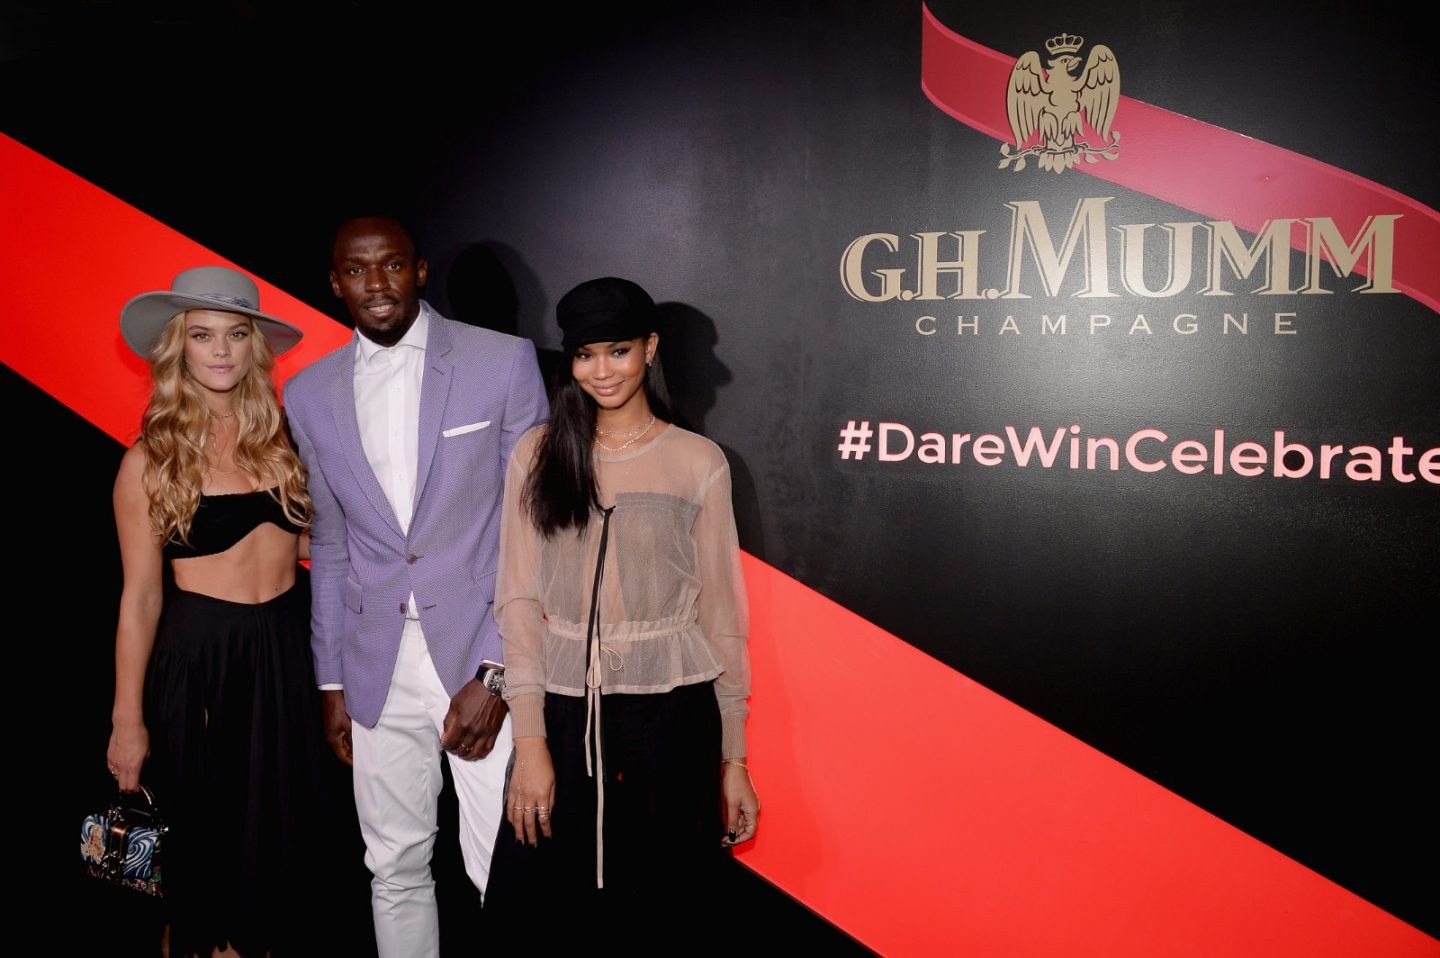 Usain Bolt, Chanel Iman, Nina Agdal celebrate Kentucky Derby at G. H. Mumm event in NYC